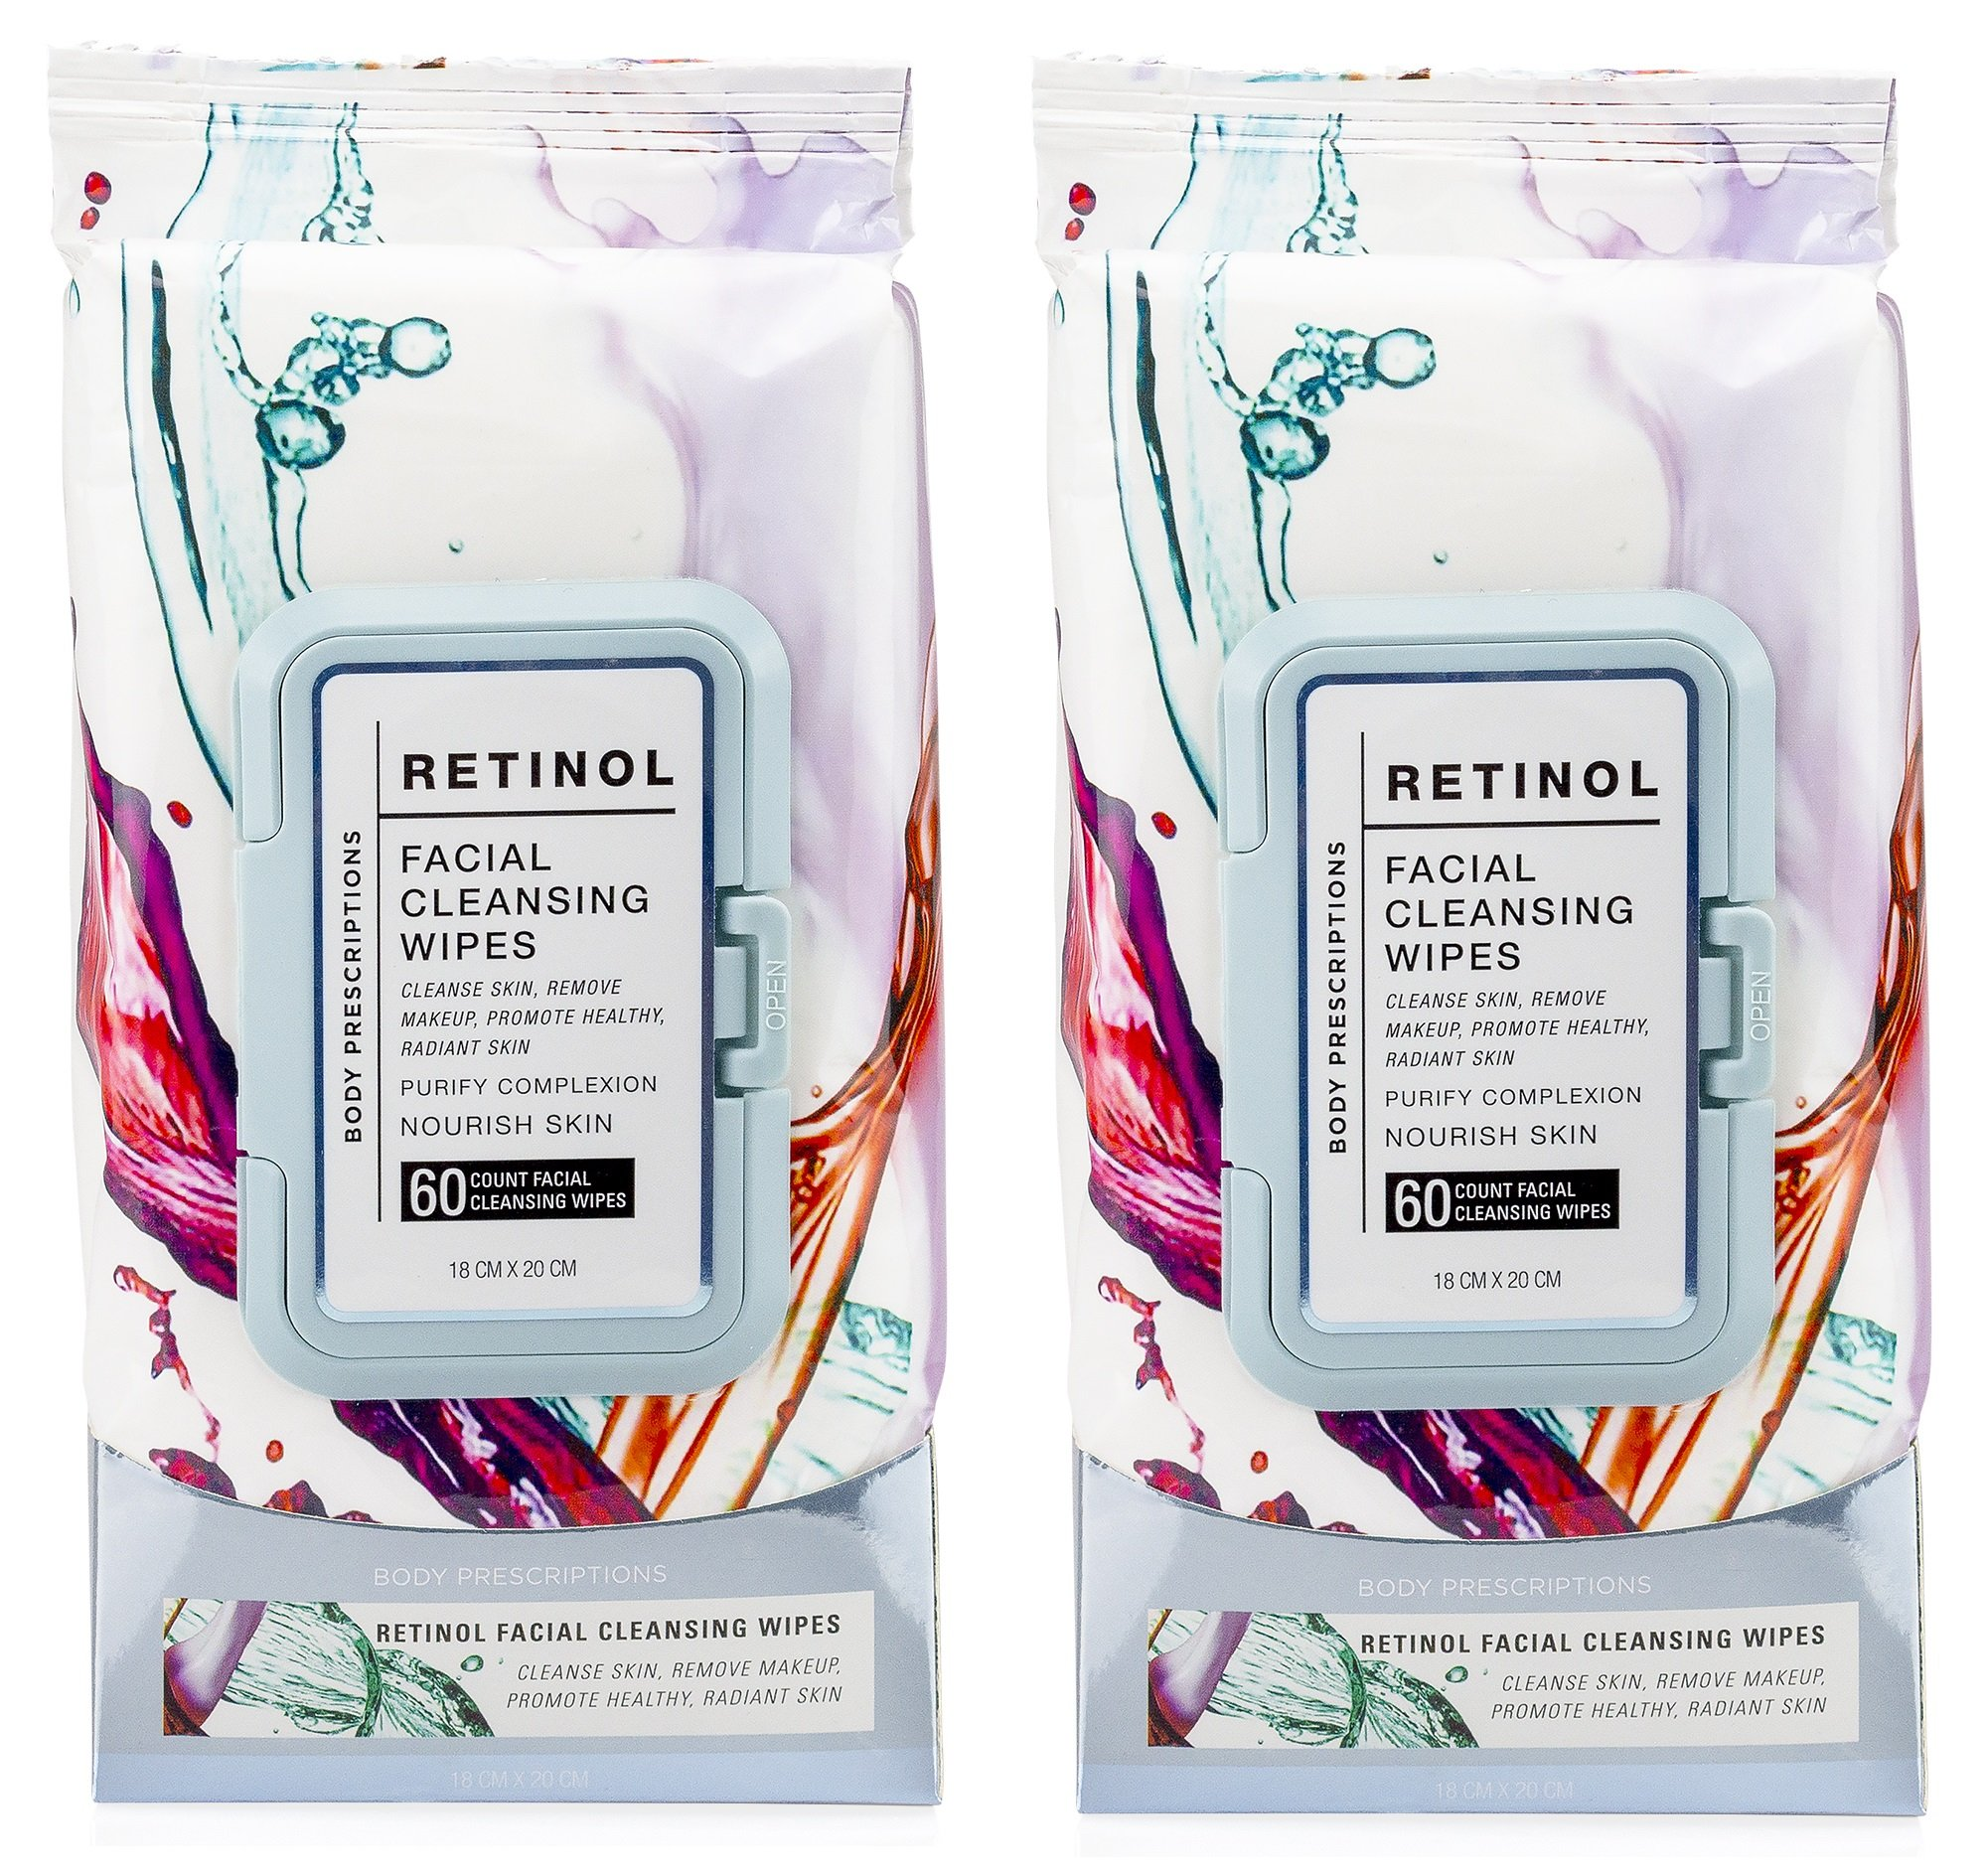 Body Prescriptions 2 Pack (60 Count Each) Retinol Facial Cleansing and Gentle Make Up Remover Wipes - Flip Top Pack by Body Prescriptions